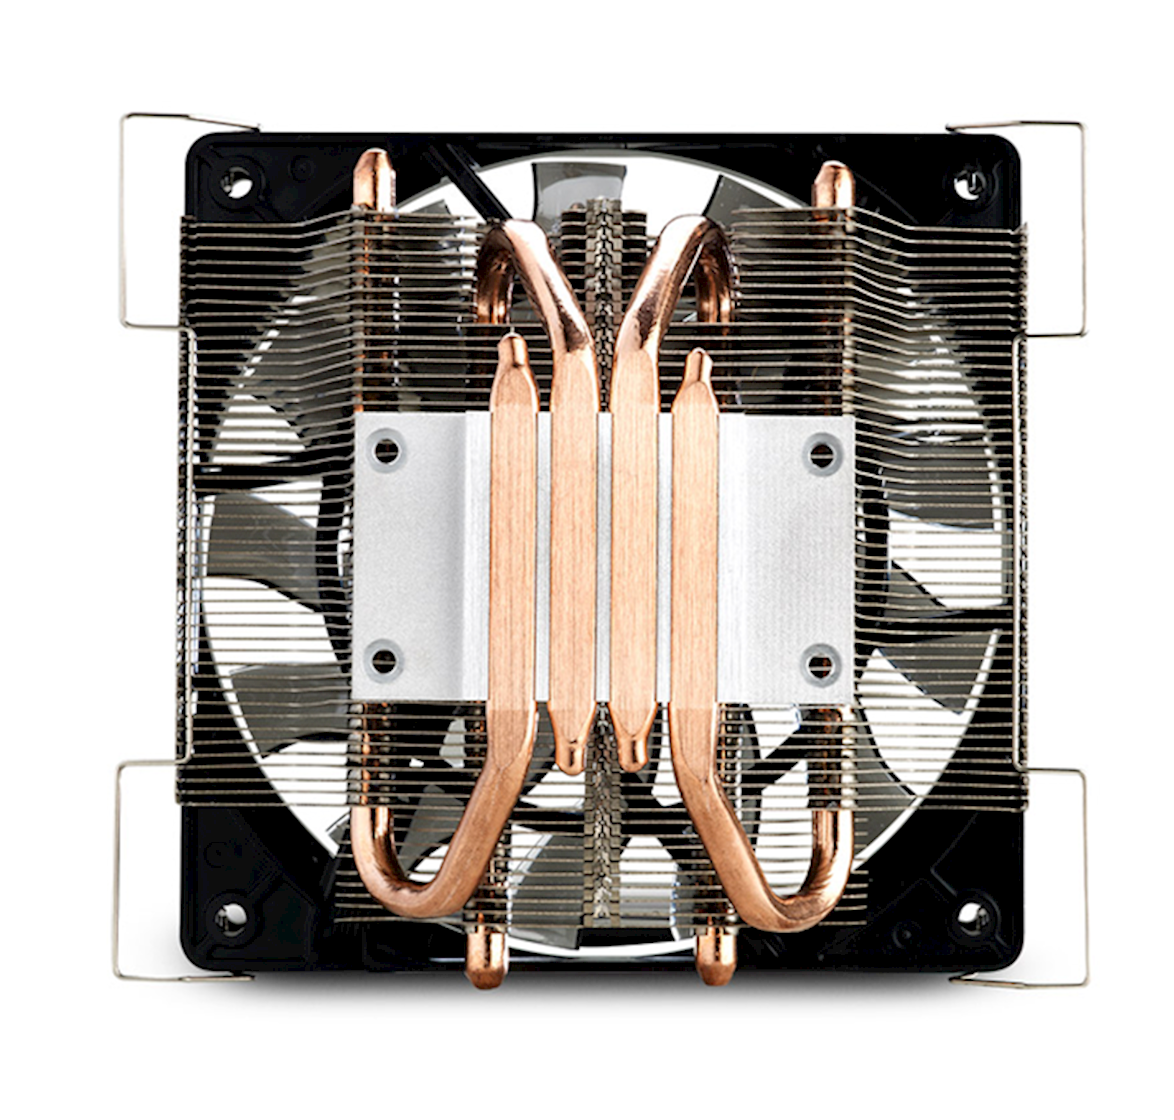 4 Direct Contact Heat Pipes